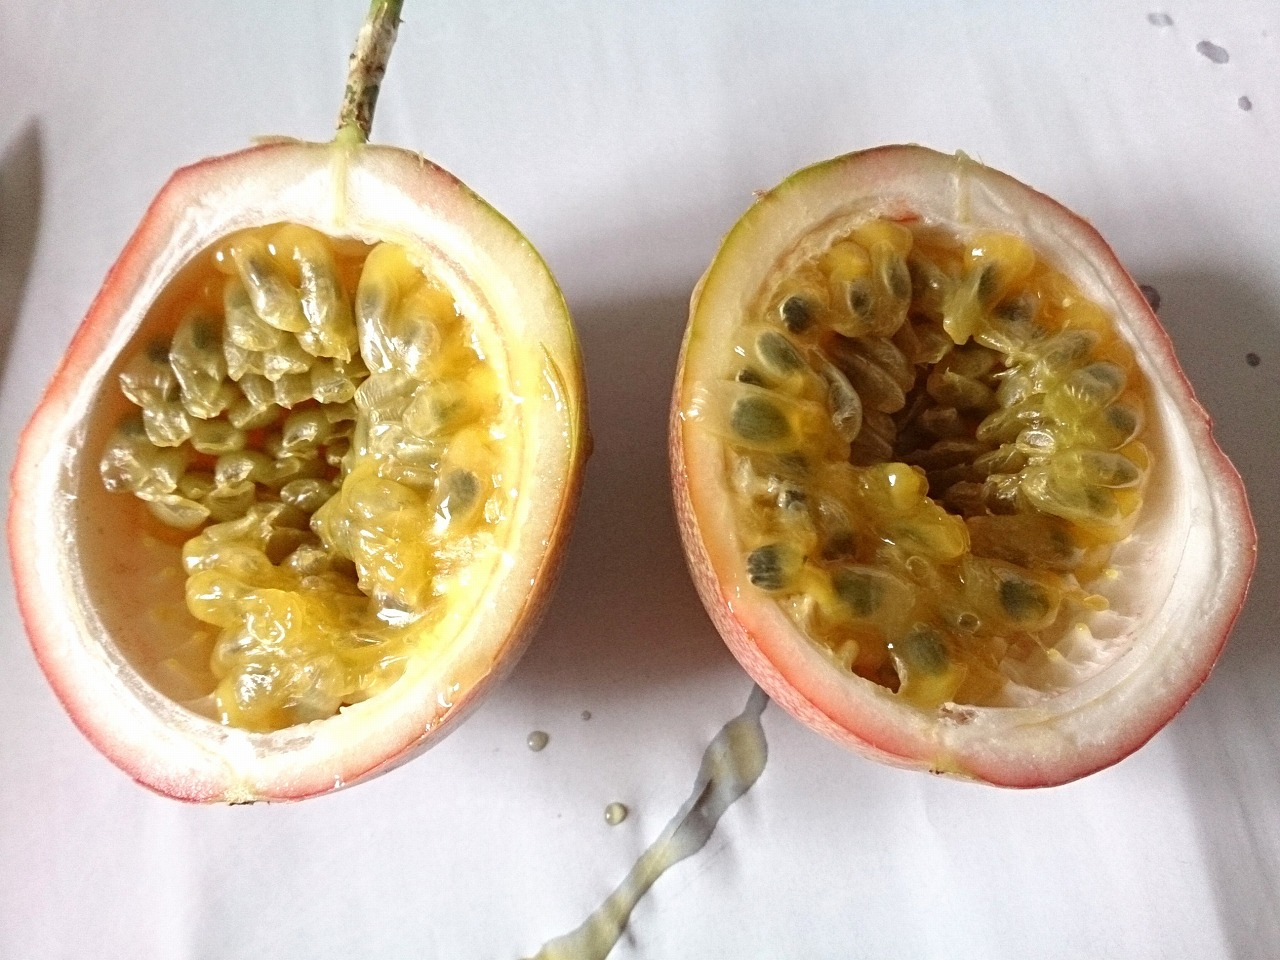 PassionFruit_No03_20140802-02.jpg